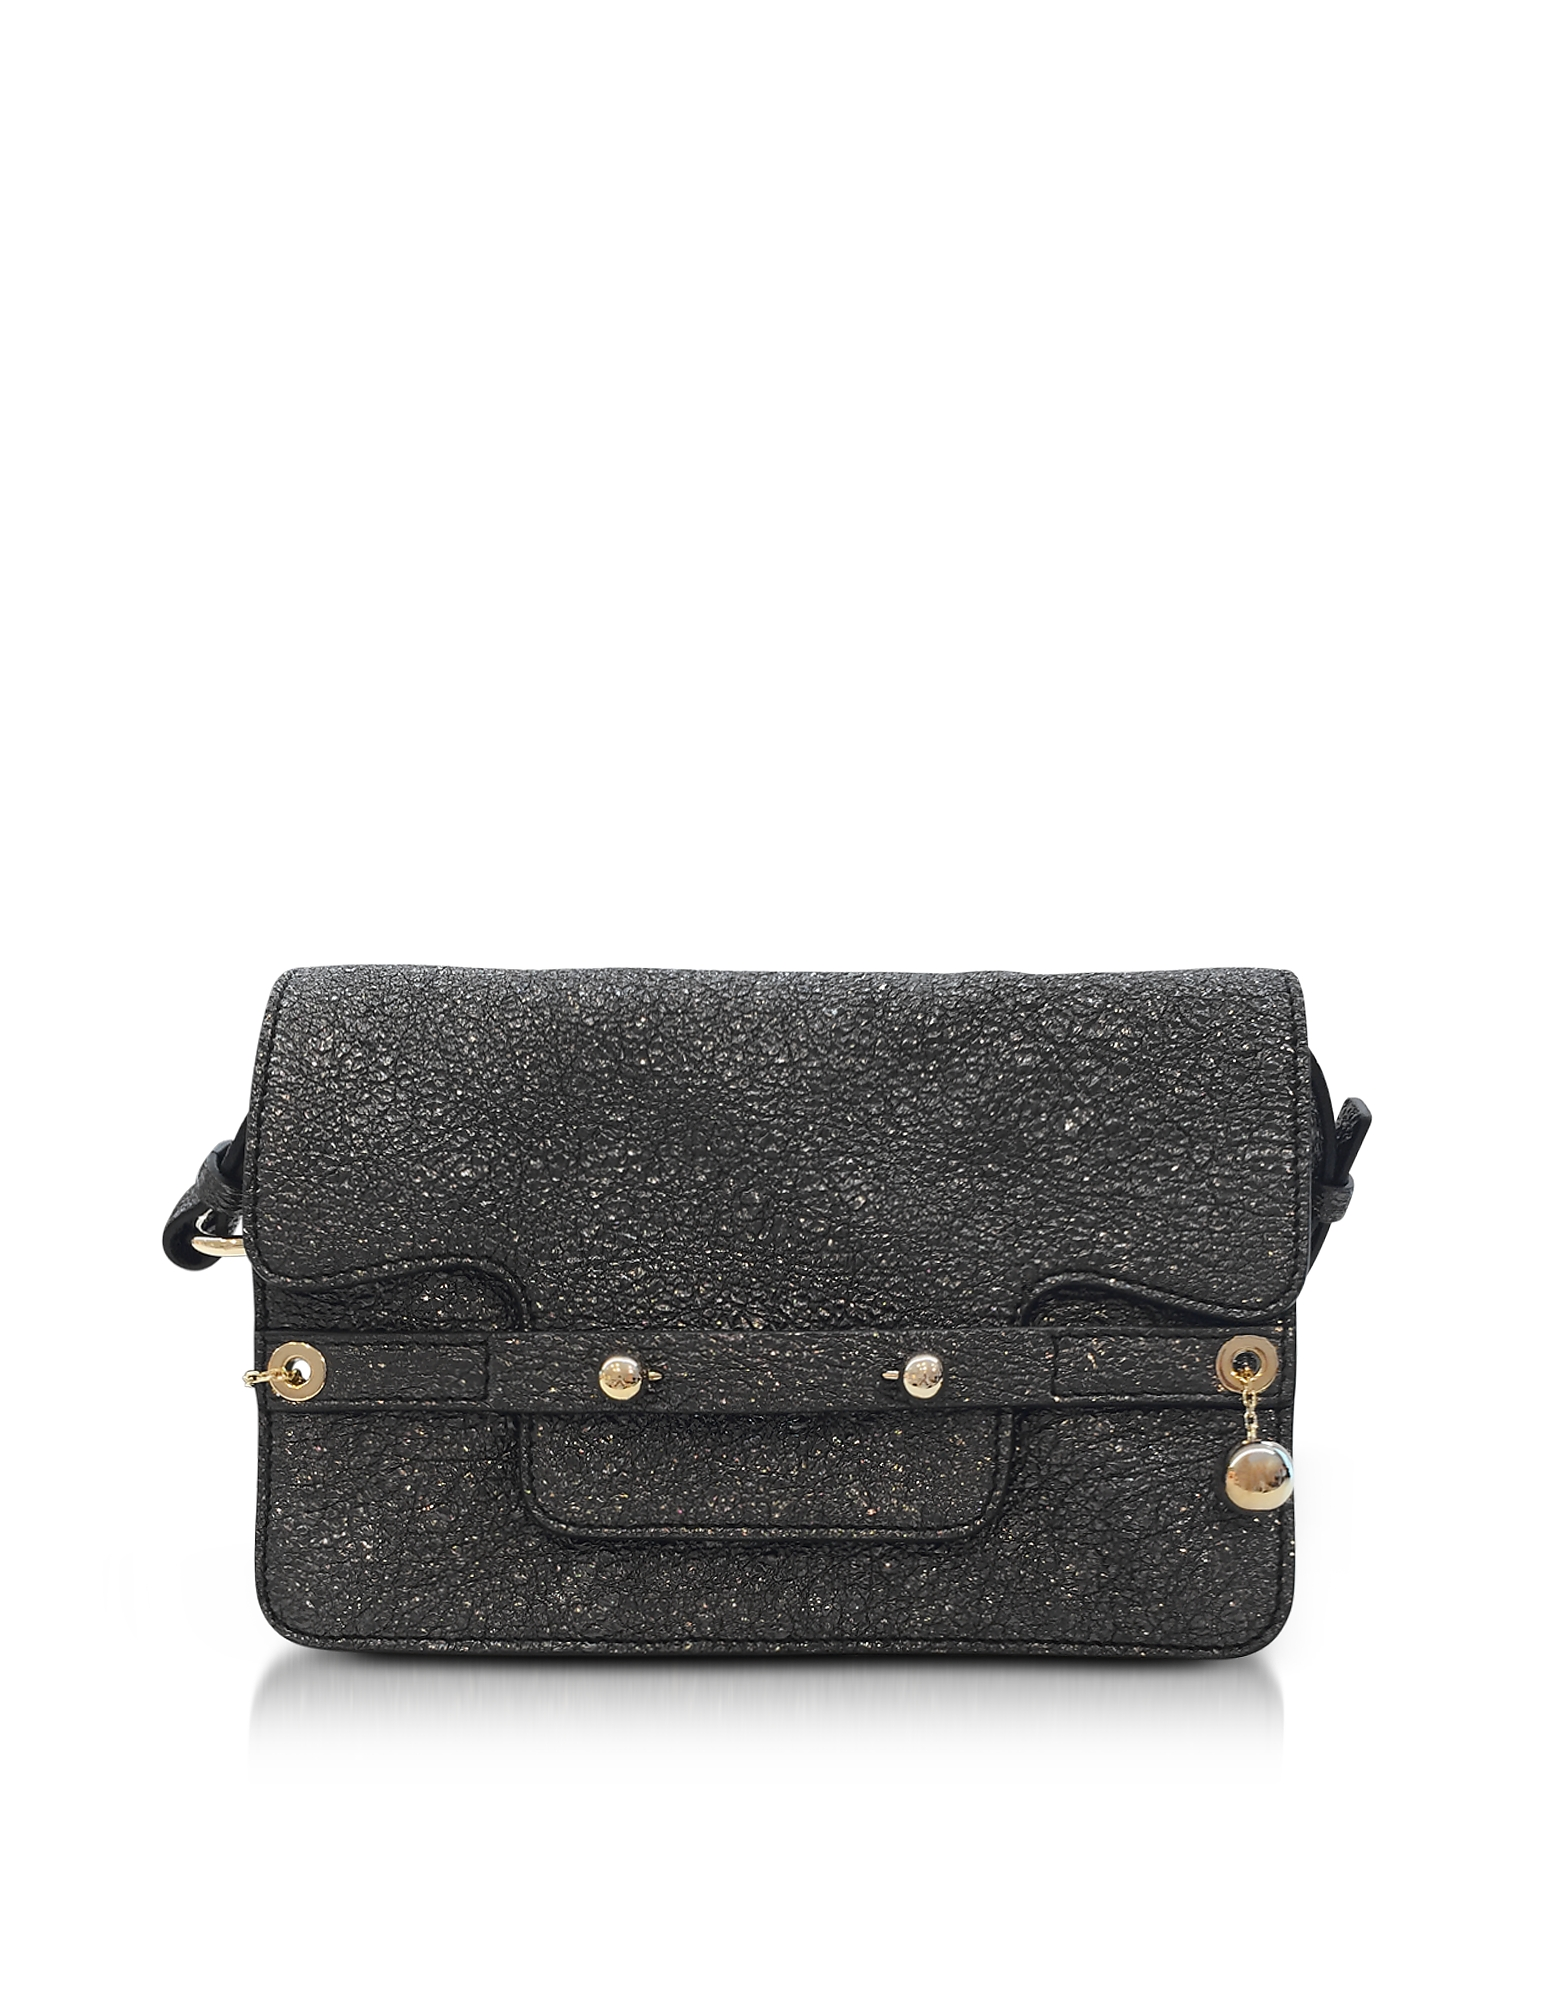 Image of RED Valentino Designer Handbags, Gunmetal Crackled Metallic Leather Flap Top Crossbody Bag